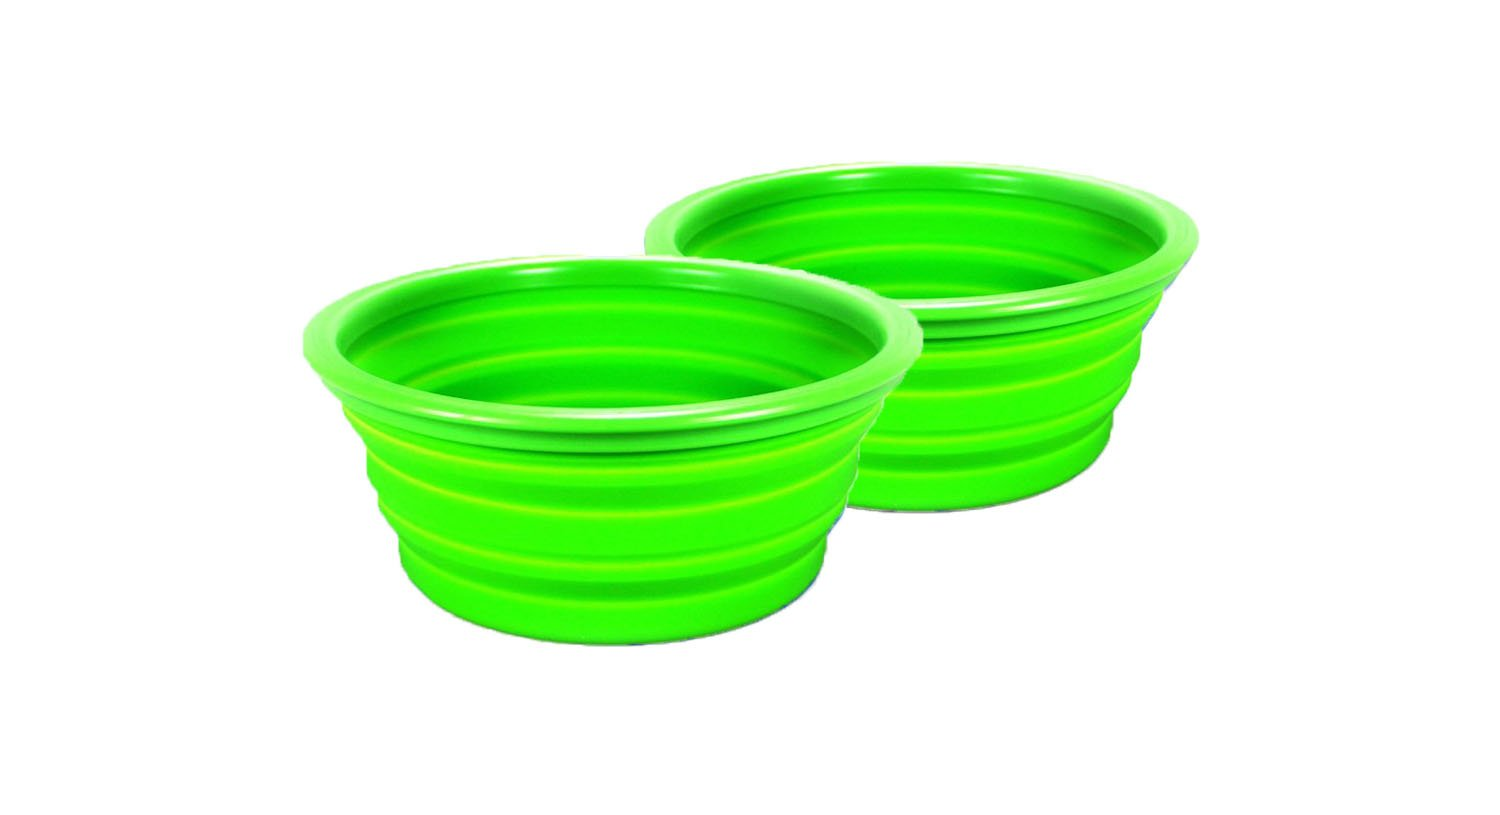 2 x Silicone Baking Bowl Camping Folding Picnic Outdoor Hiking Backpack Green big buddy